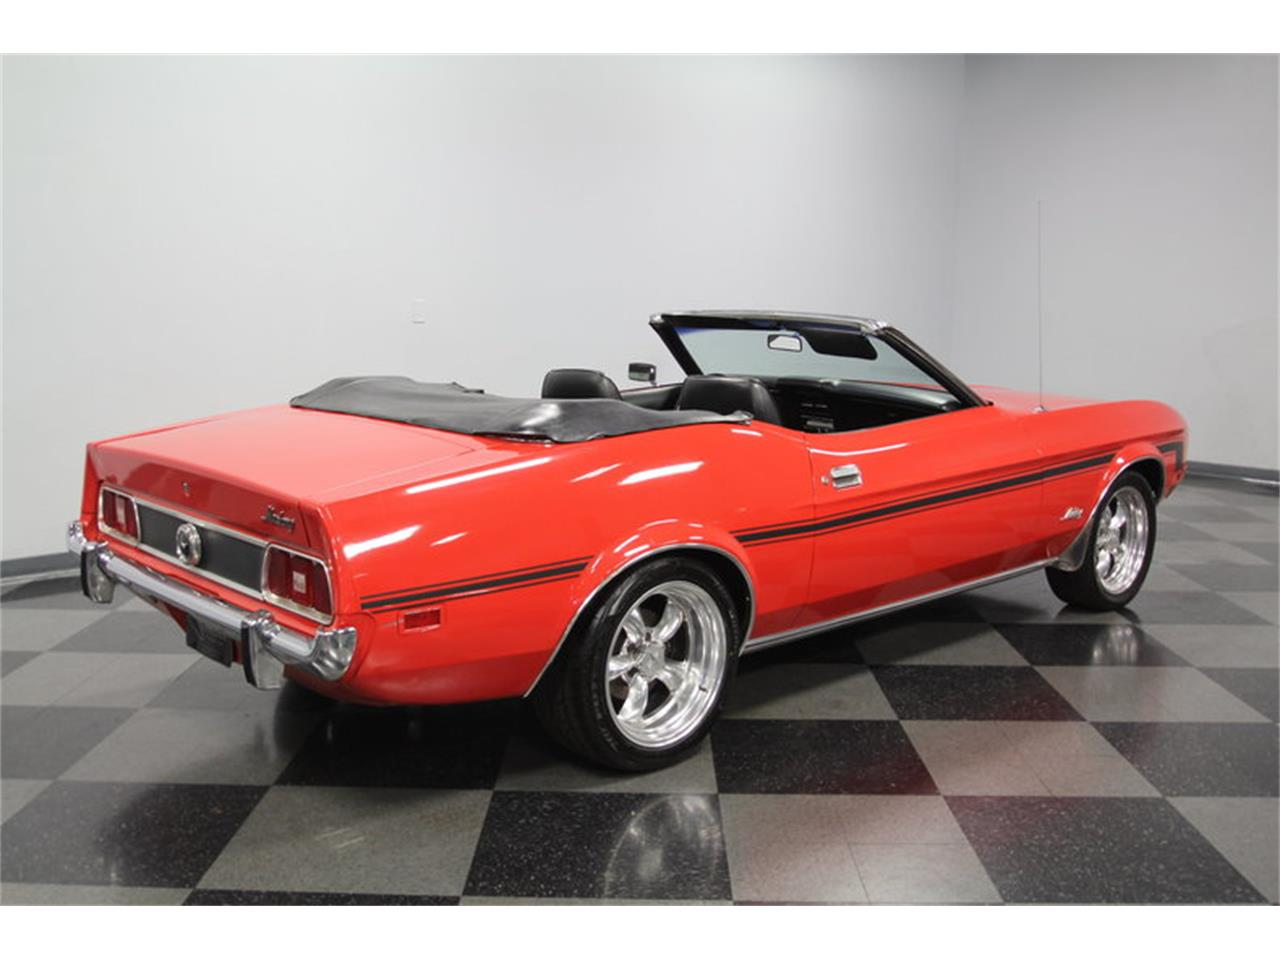 Large Picture of '73 Mustang located in North Carolina - $23,995.00 - MZGC